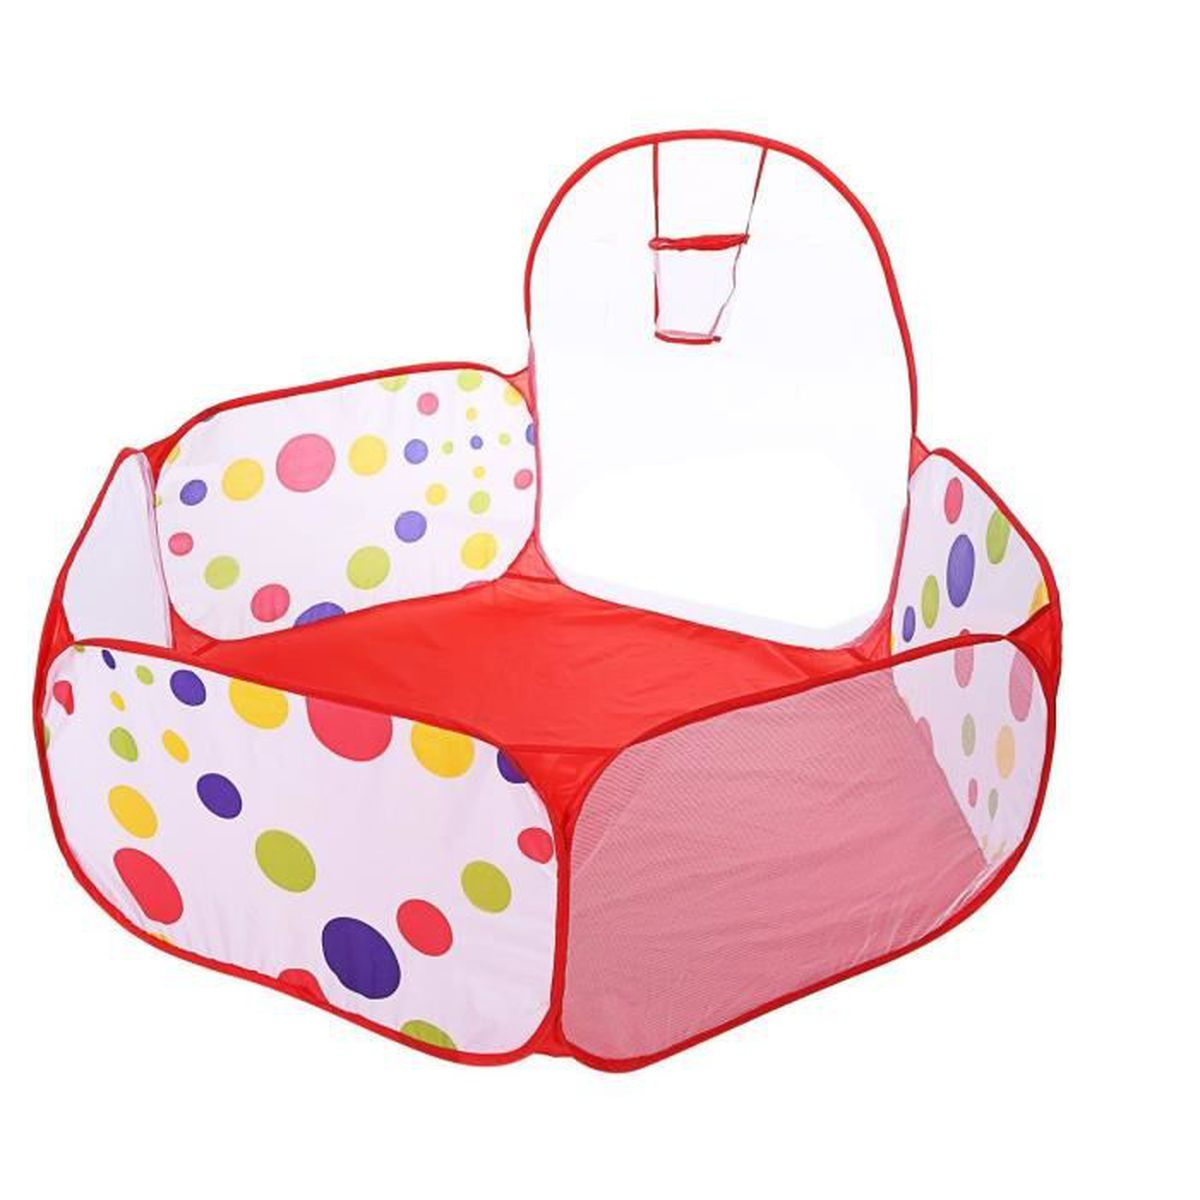 petite piscine balle pliable dehors pour enfant dessin. Black Bedroom Furniture Sets. Home Design Ideas